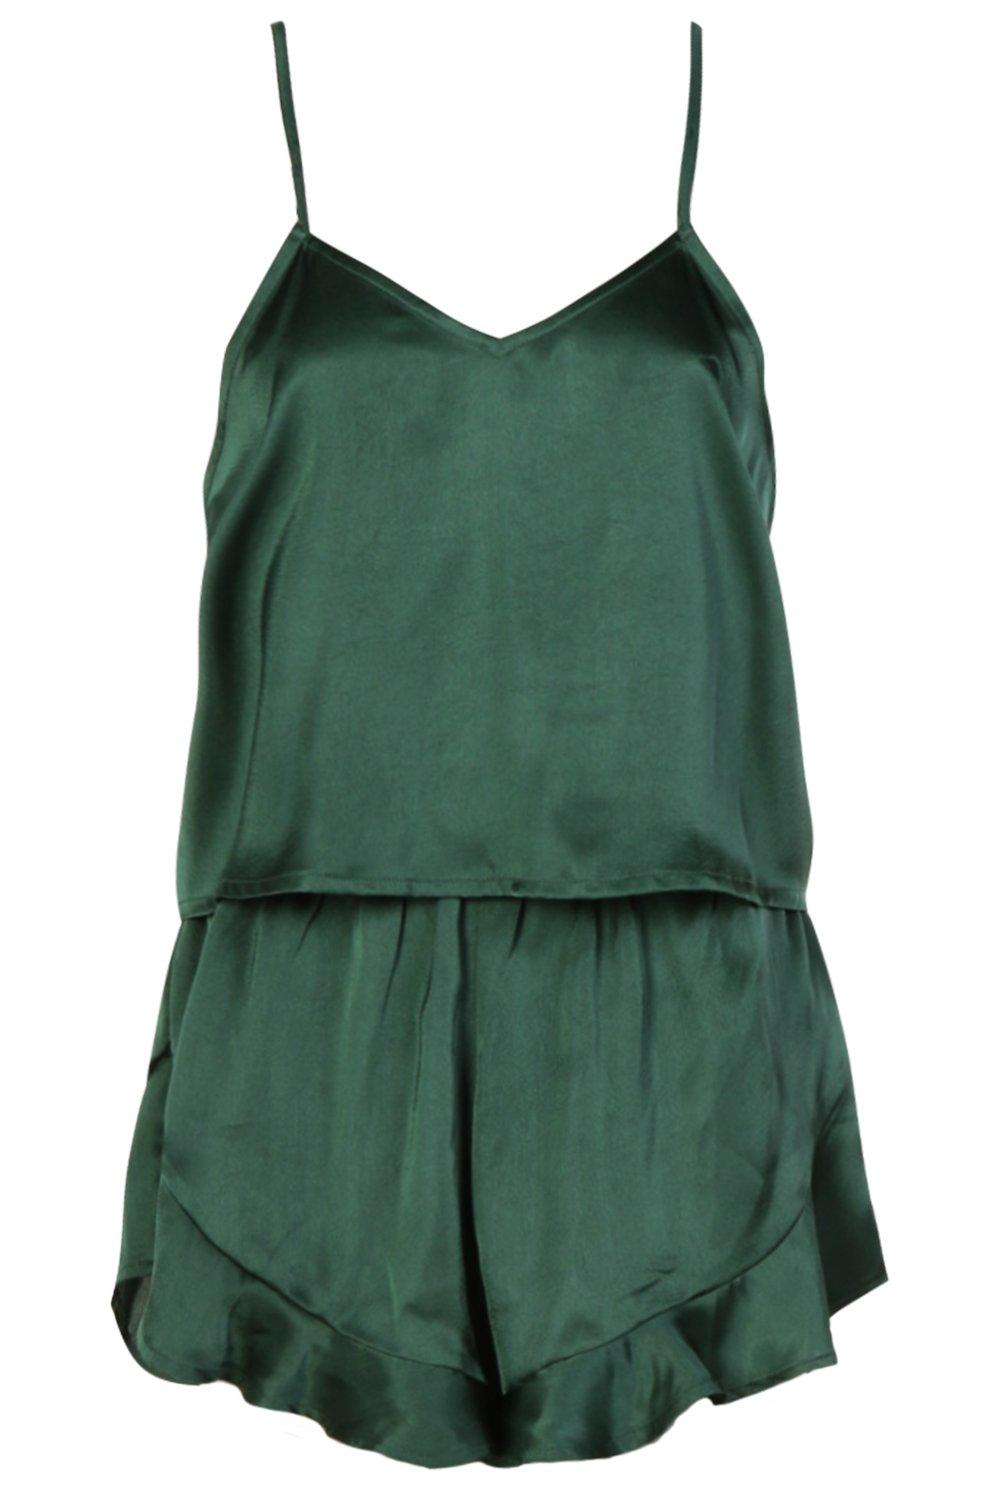 Vest Set Satin green dark amp; Short RqAwT7